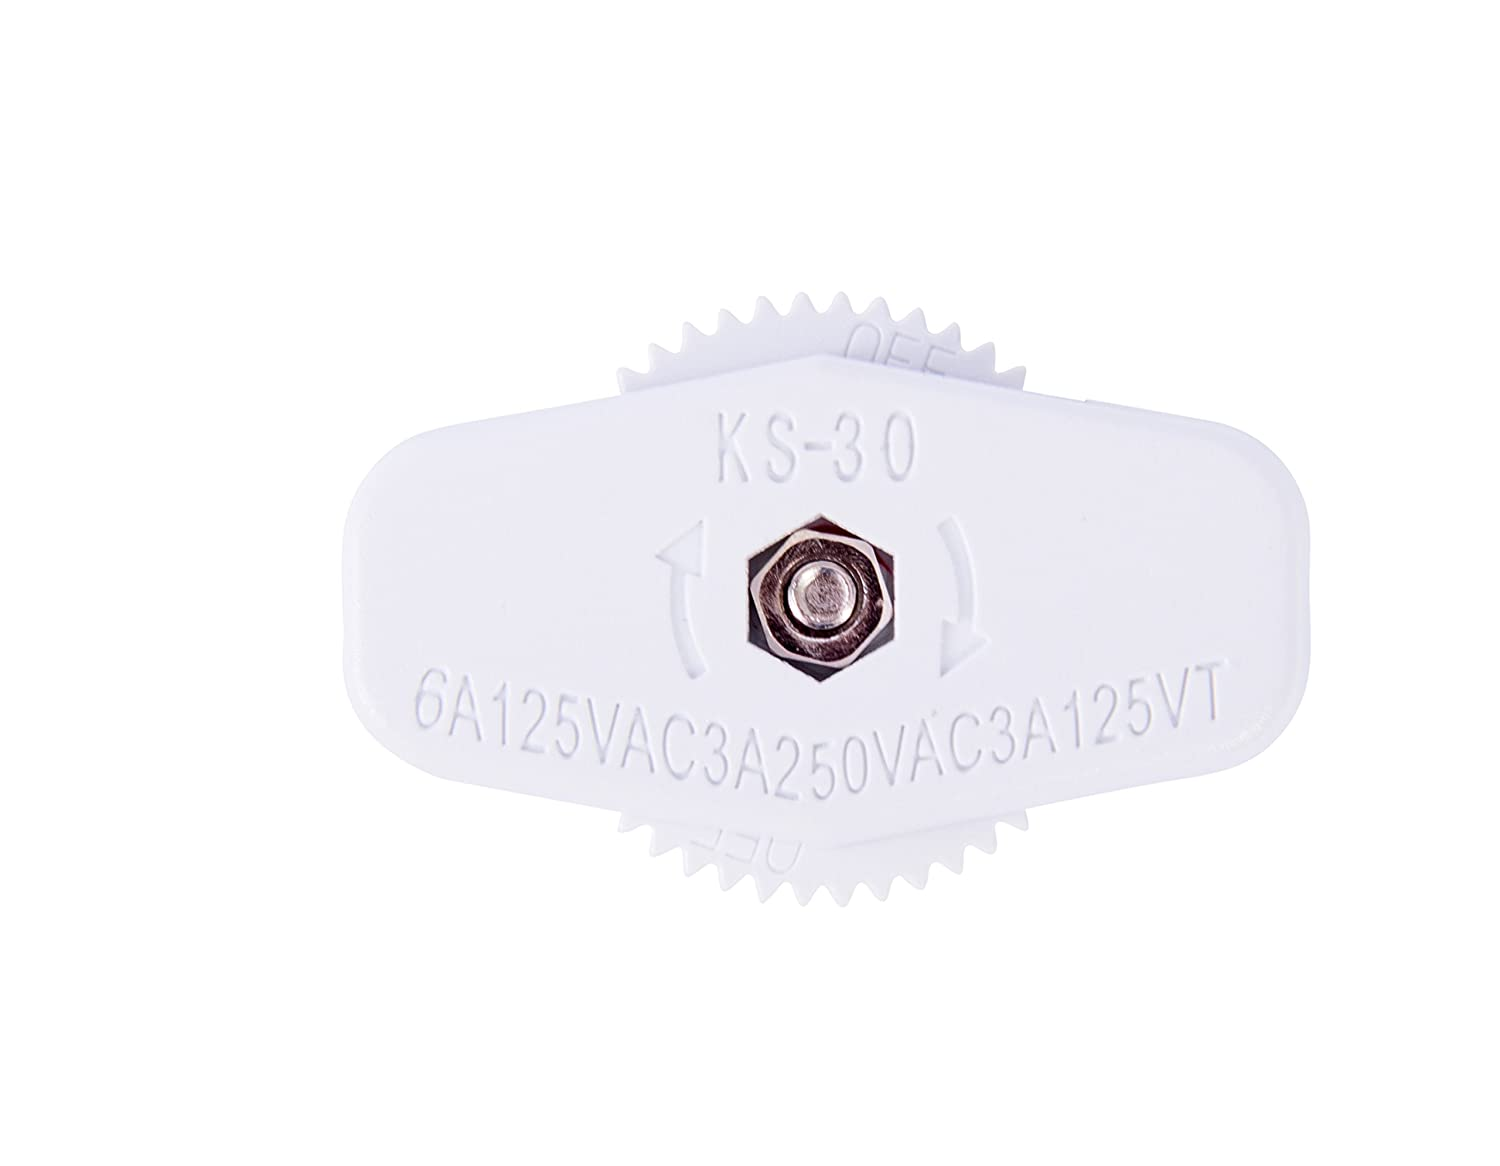 Gardner Bender GSW-72 Heavy-Duty Electrical Cord Switch ON-OFF SPST 6 A//125V AC Insulation Displacement White